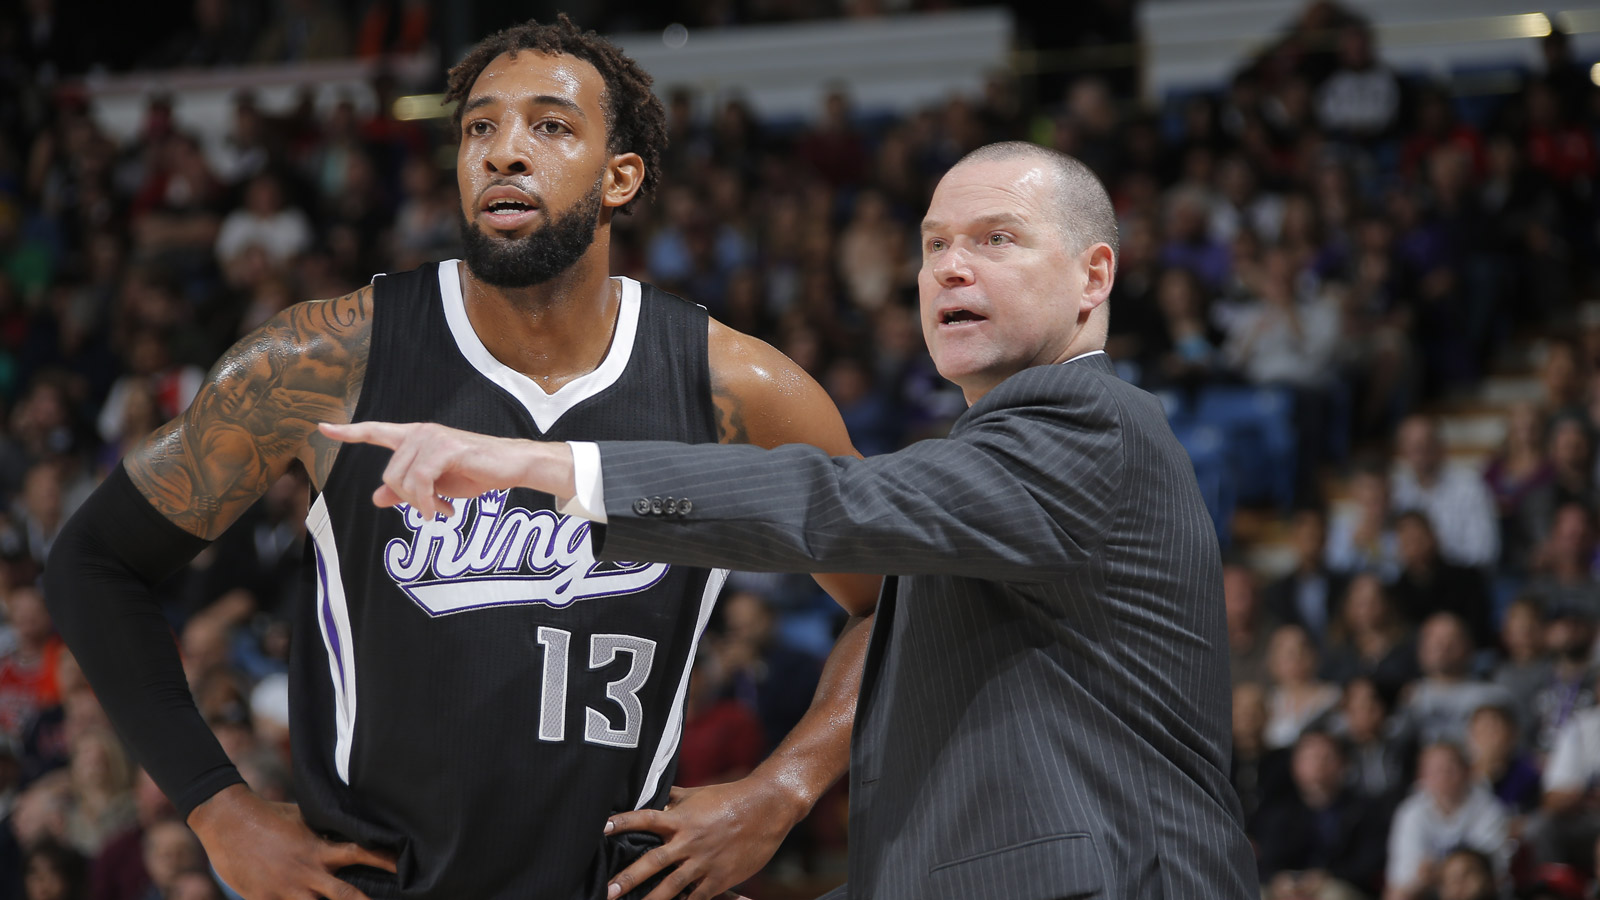 Head coach Michael Malone of the Sacramento Kings with Derrick Williams on Nov. 20, 2014 at Sleep Train Arena in Sacramento. (credit: Rocky Widner/NBAE via Getty Images)